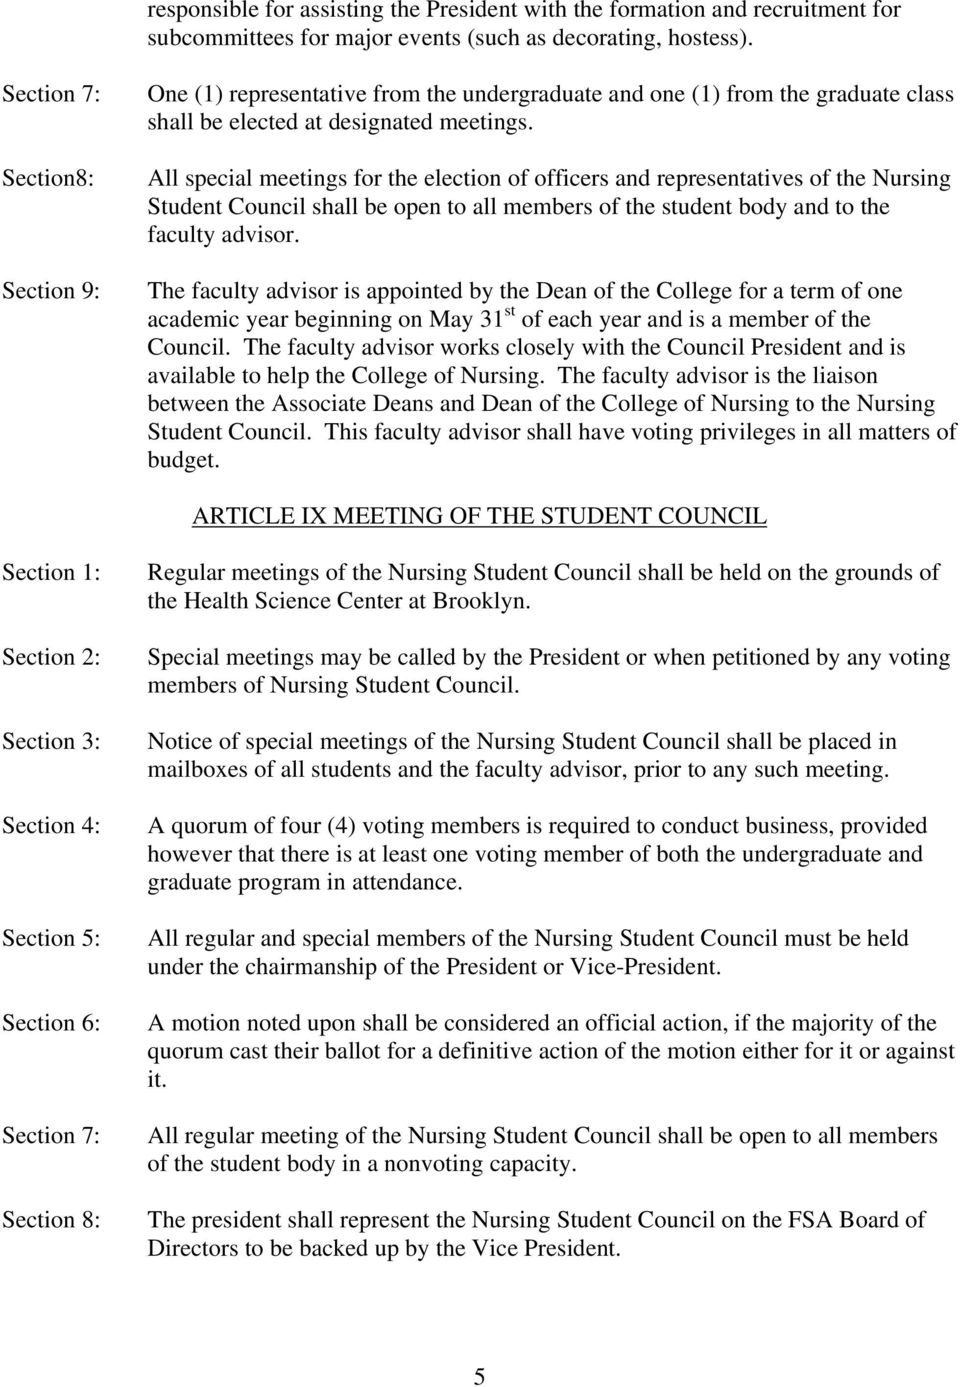 All special meetings for the election of officers and representatives of the Nursing Student Council shall be open to all members of the student body and to the faculty advisor.